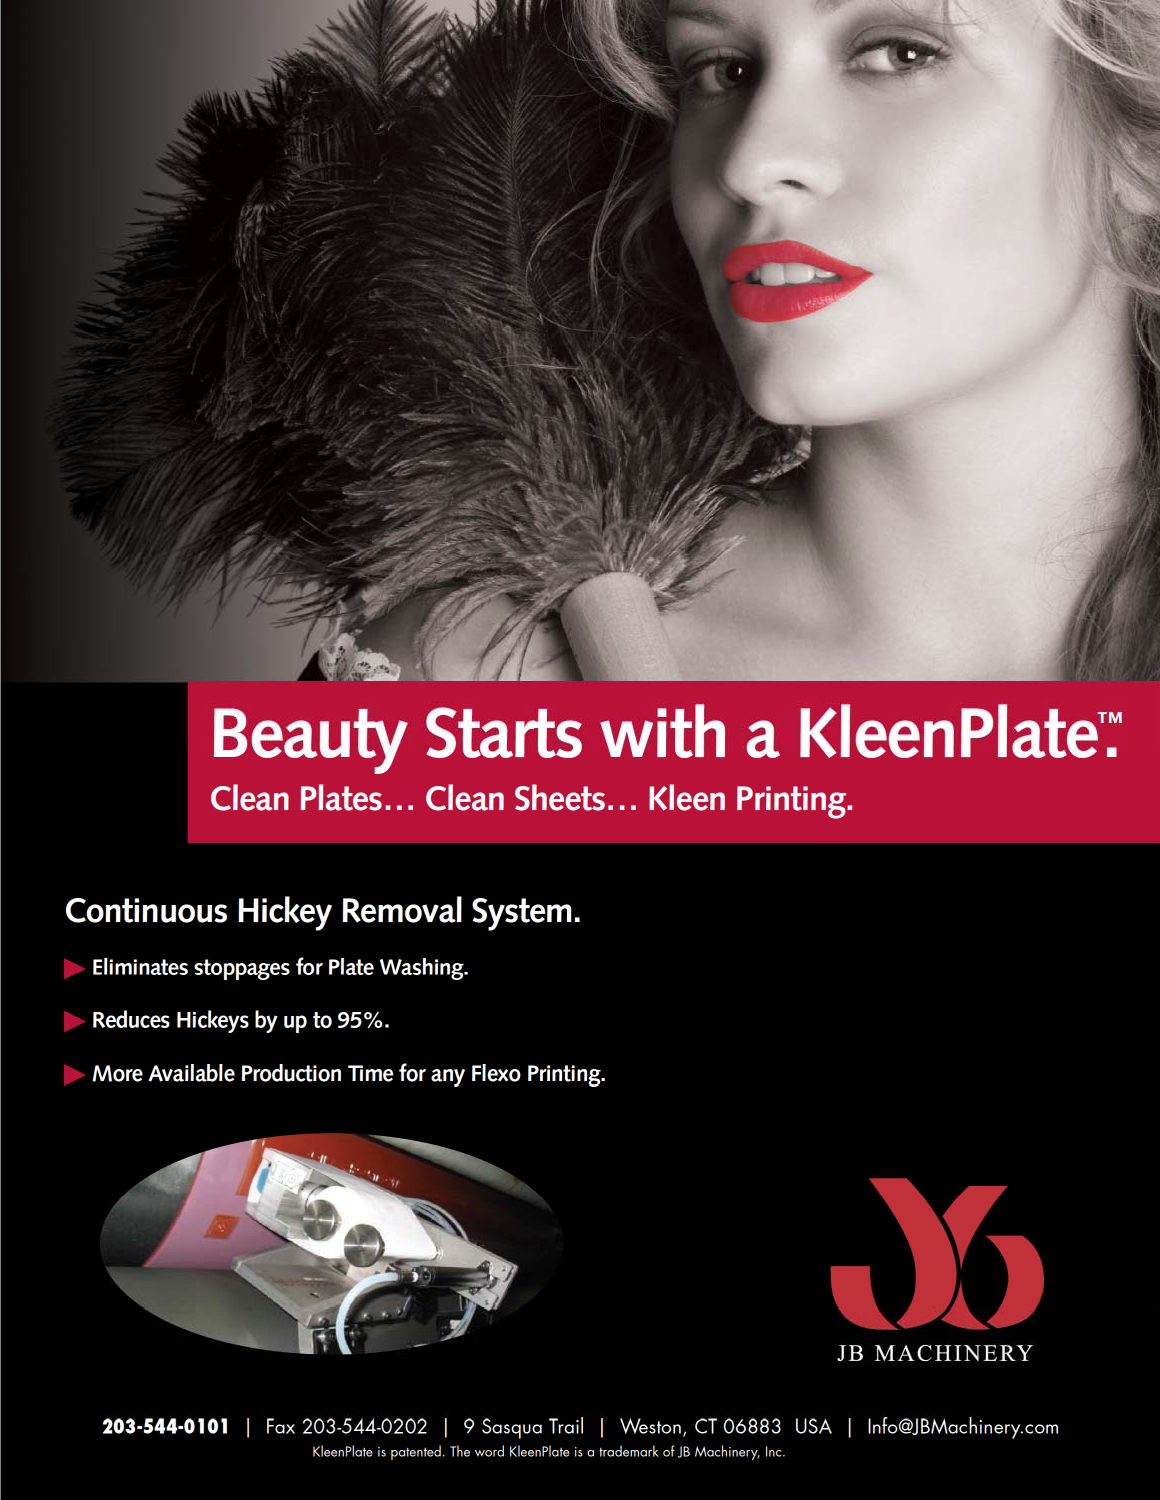 Learn more by viewing the JB Machinery KleenPlate Brochure